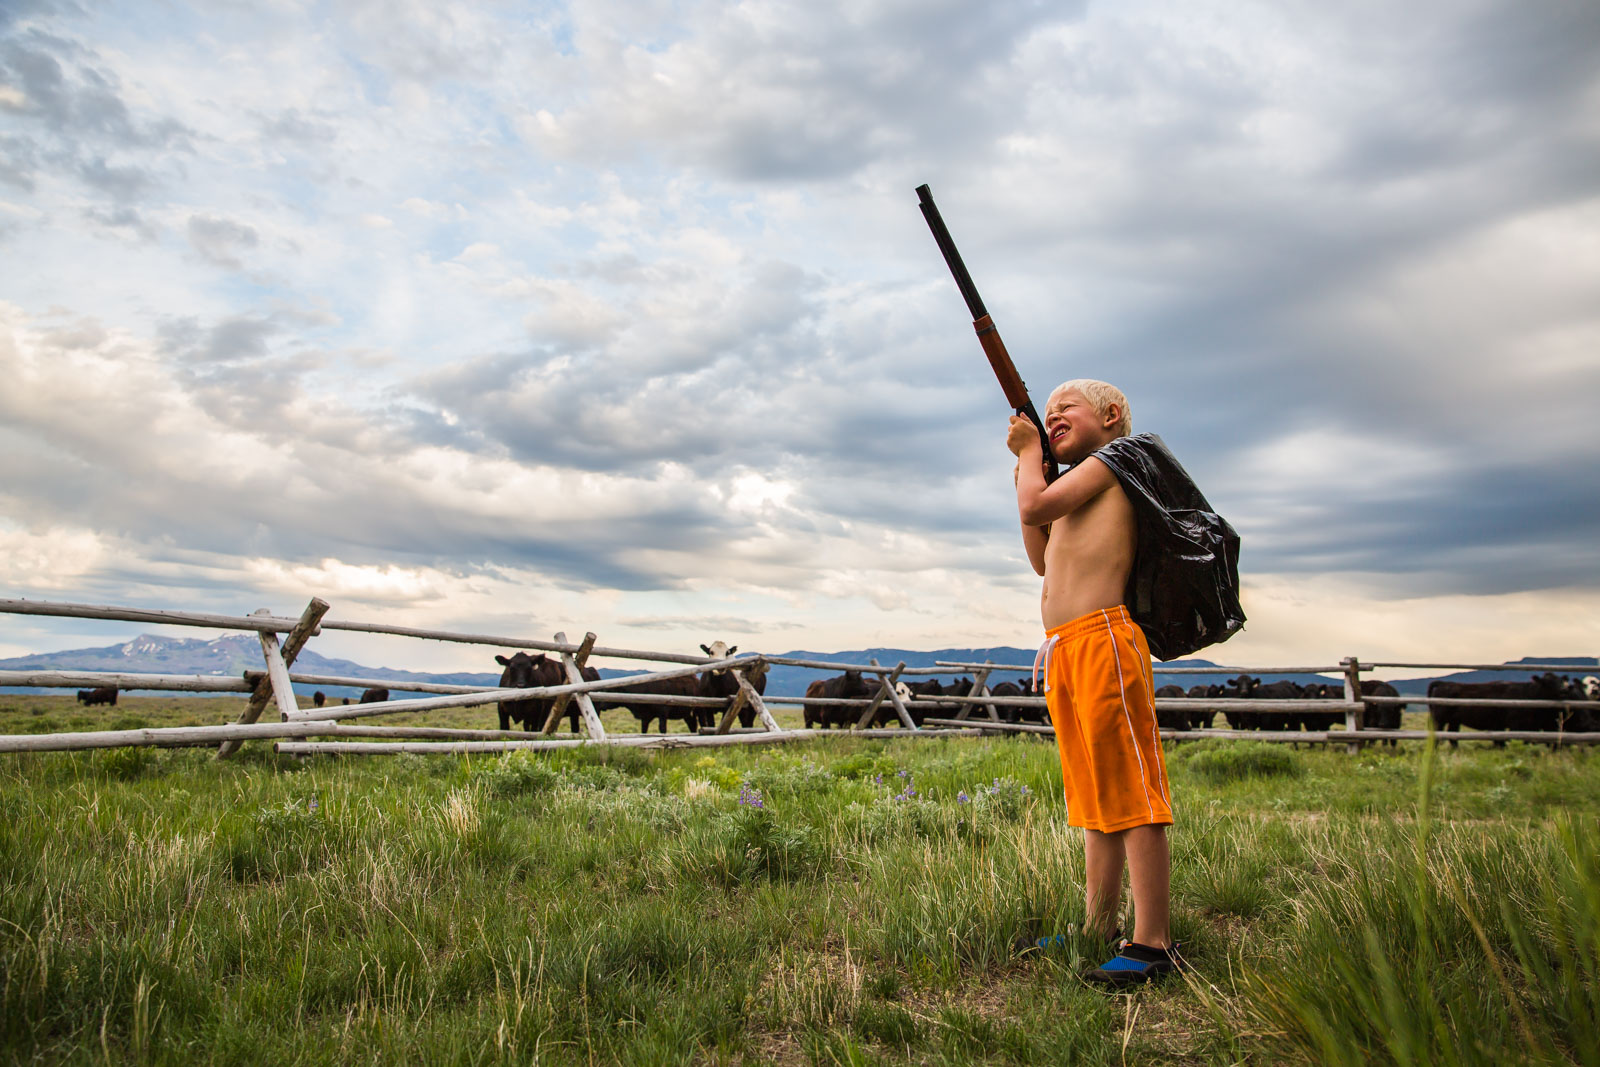 child-portrait-montana-gun-cows